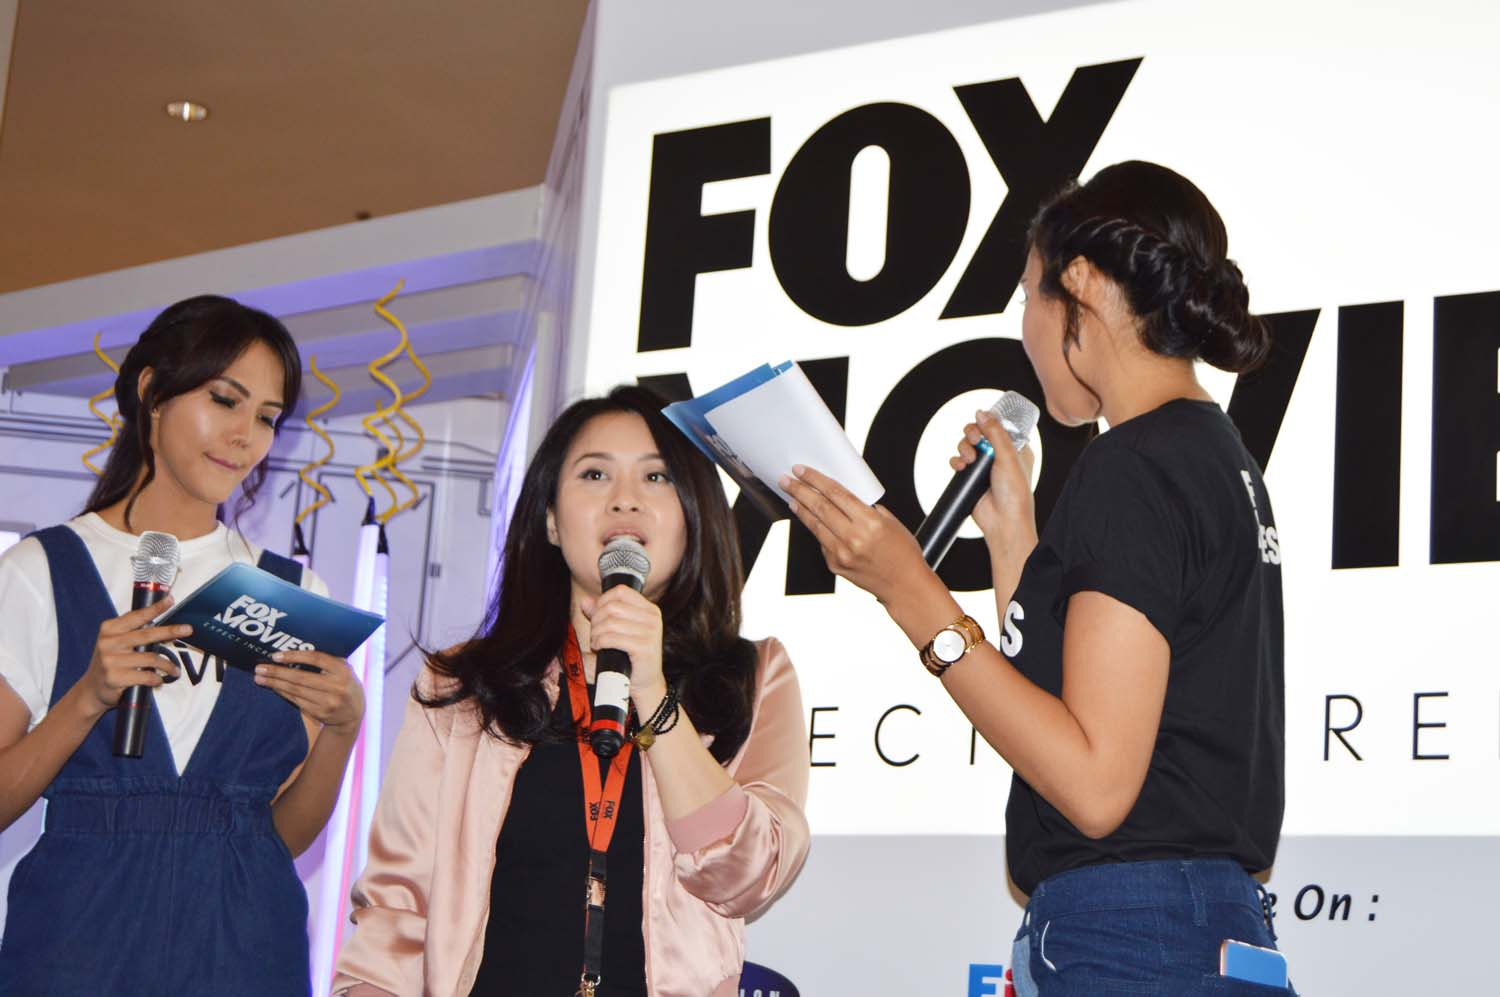 <a  style='text-decoration: none; font-weight:bold;' href=http://redwhitecommunication.com:80/index.php/_home/news/id/MTIy.php>Fox Movies Lakukan Perubahan Saluran Mulai 10 Juni 2017</a>